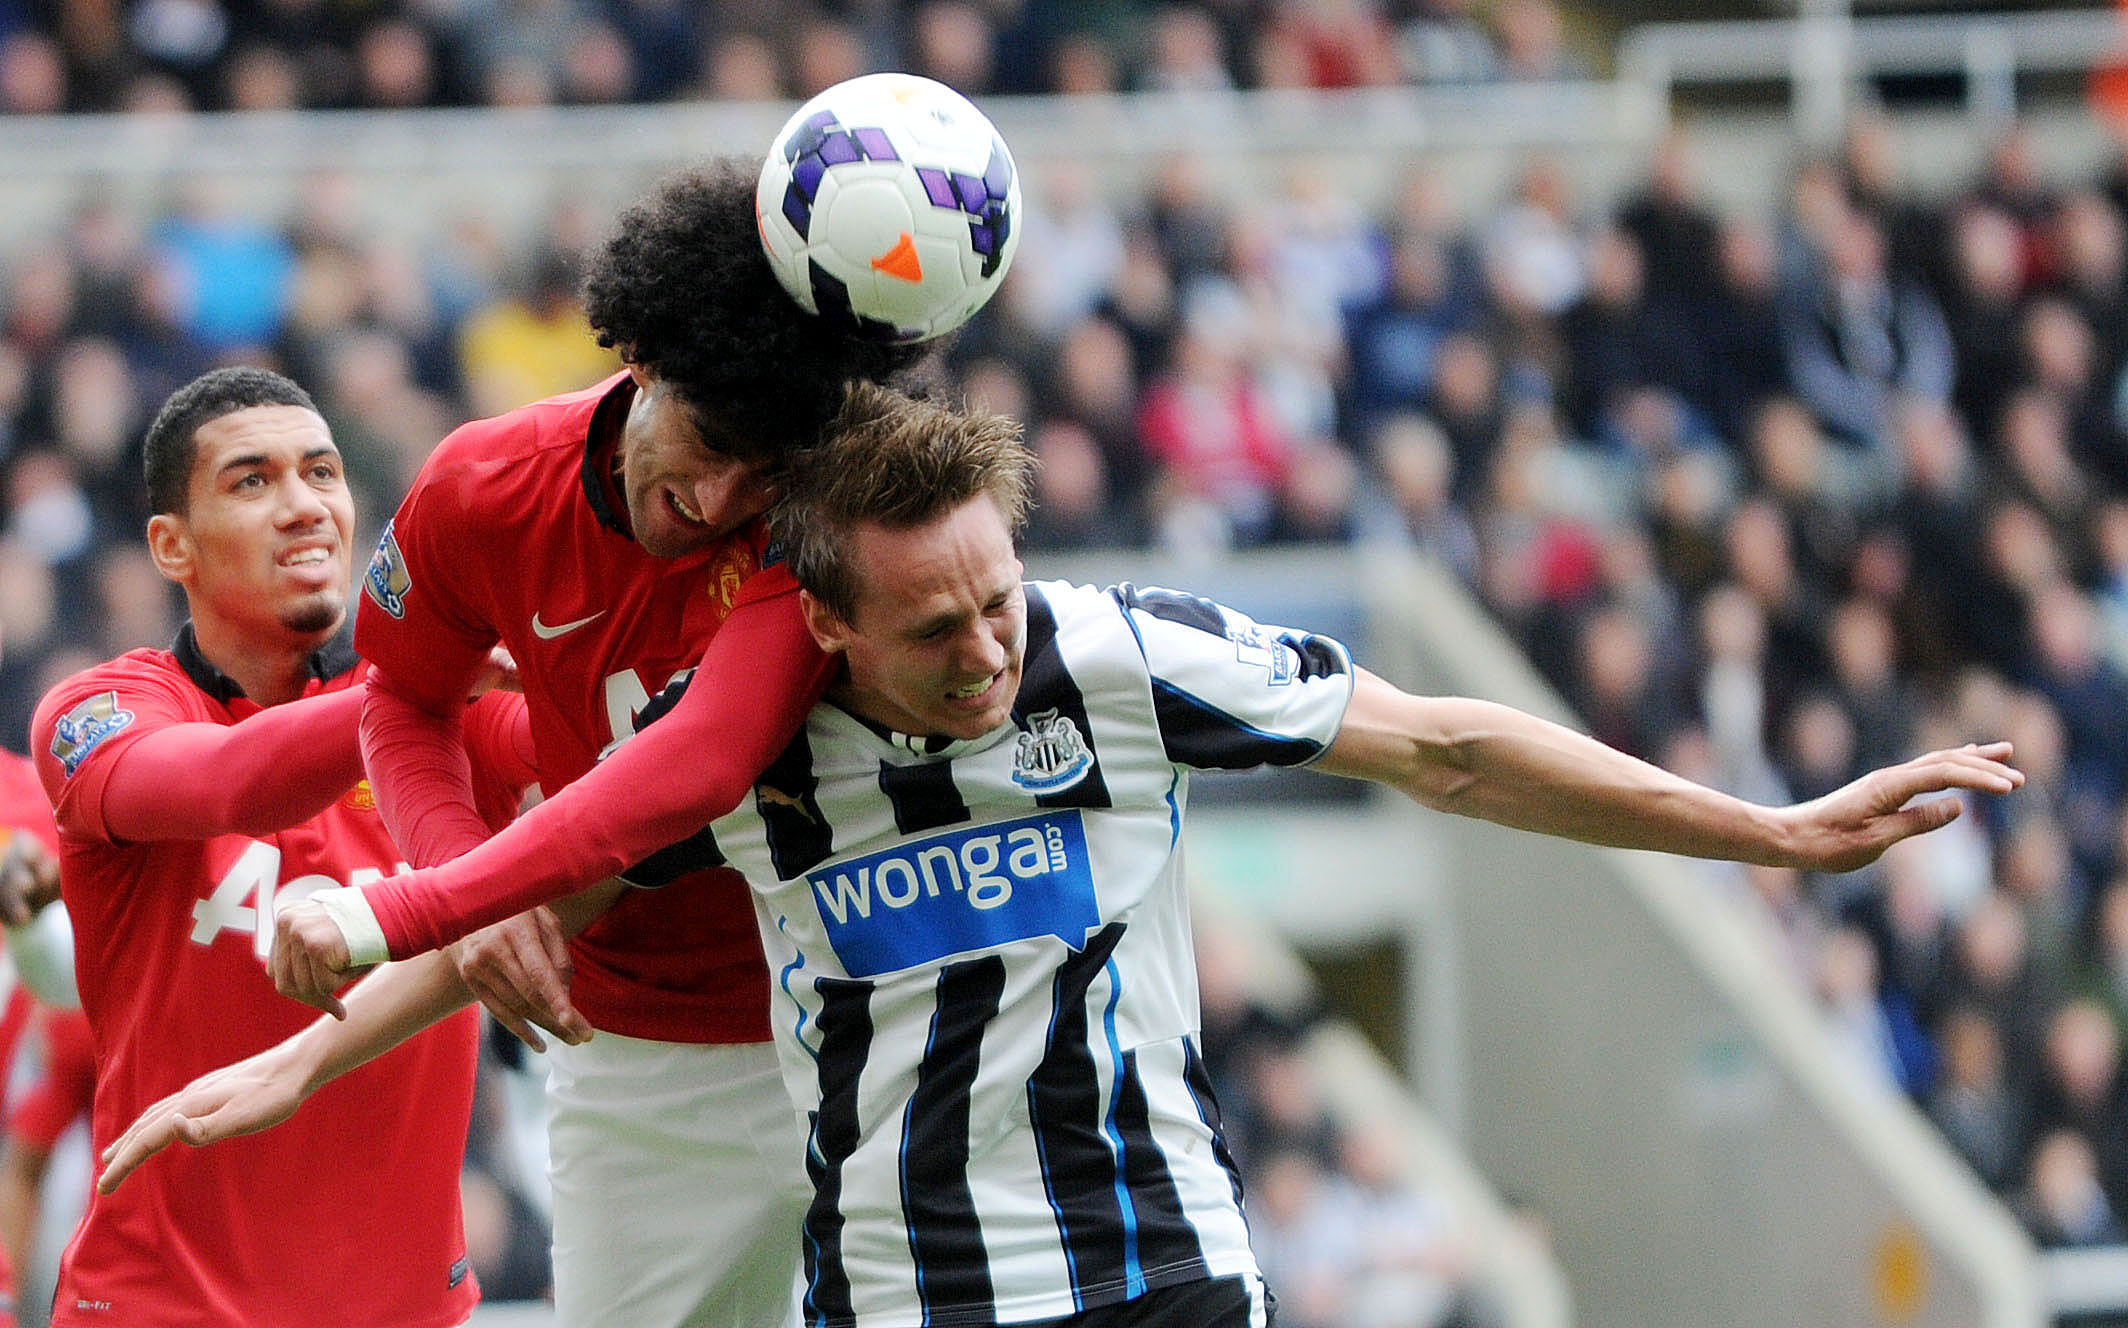 UNDER REVIEW: Newcastle will take their time over a decision regarding the future of Luuk de Jong